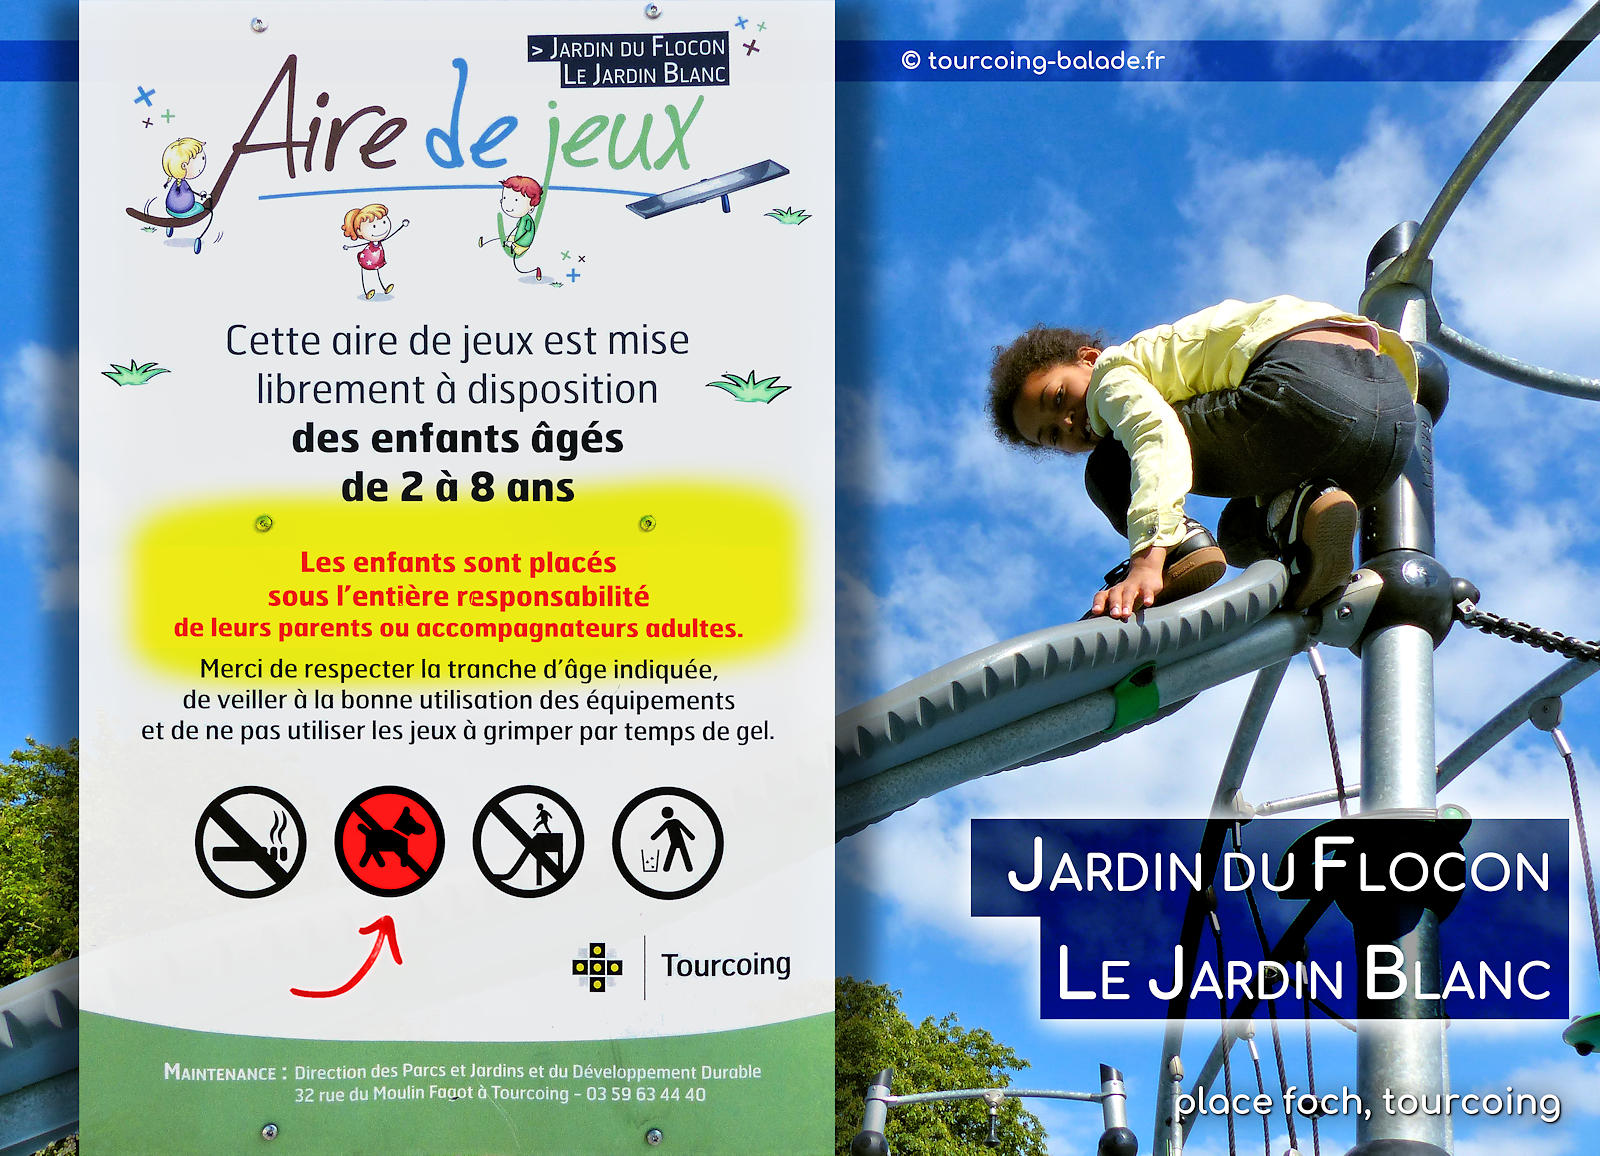 Parc Place Foch, Tourcoing - Admission chiens.